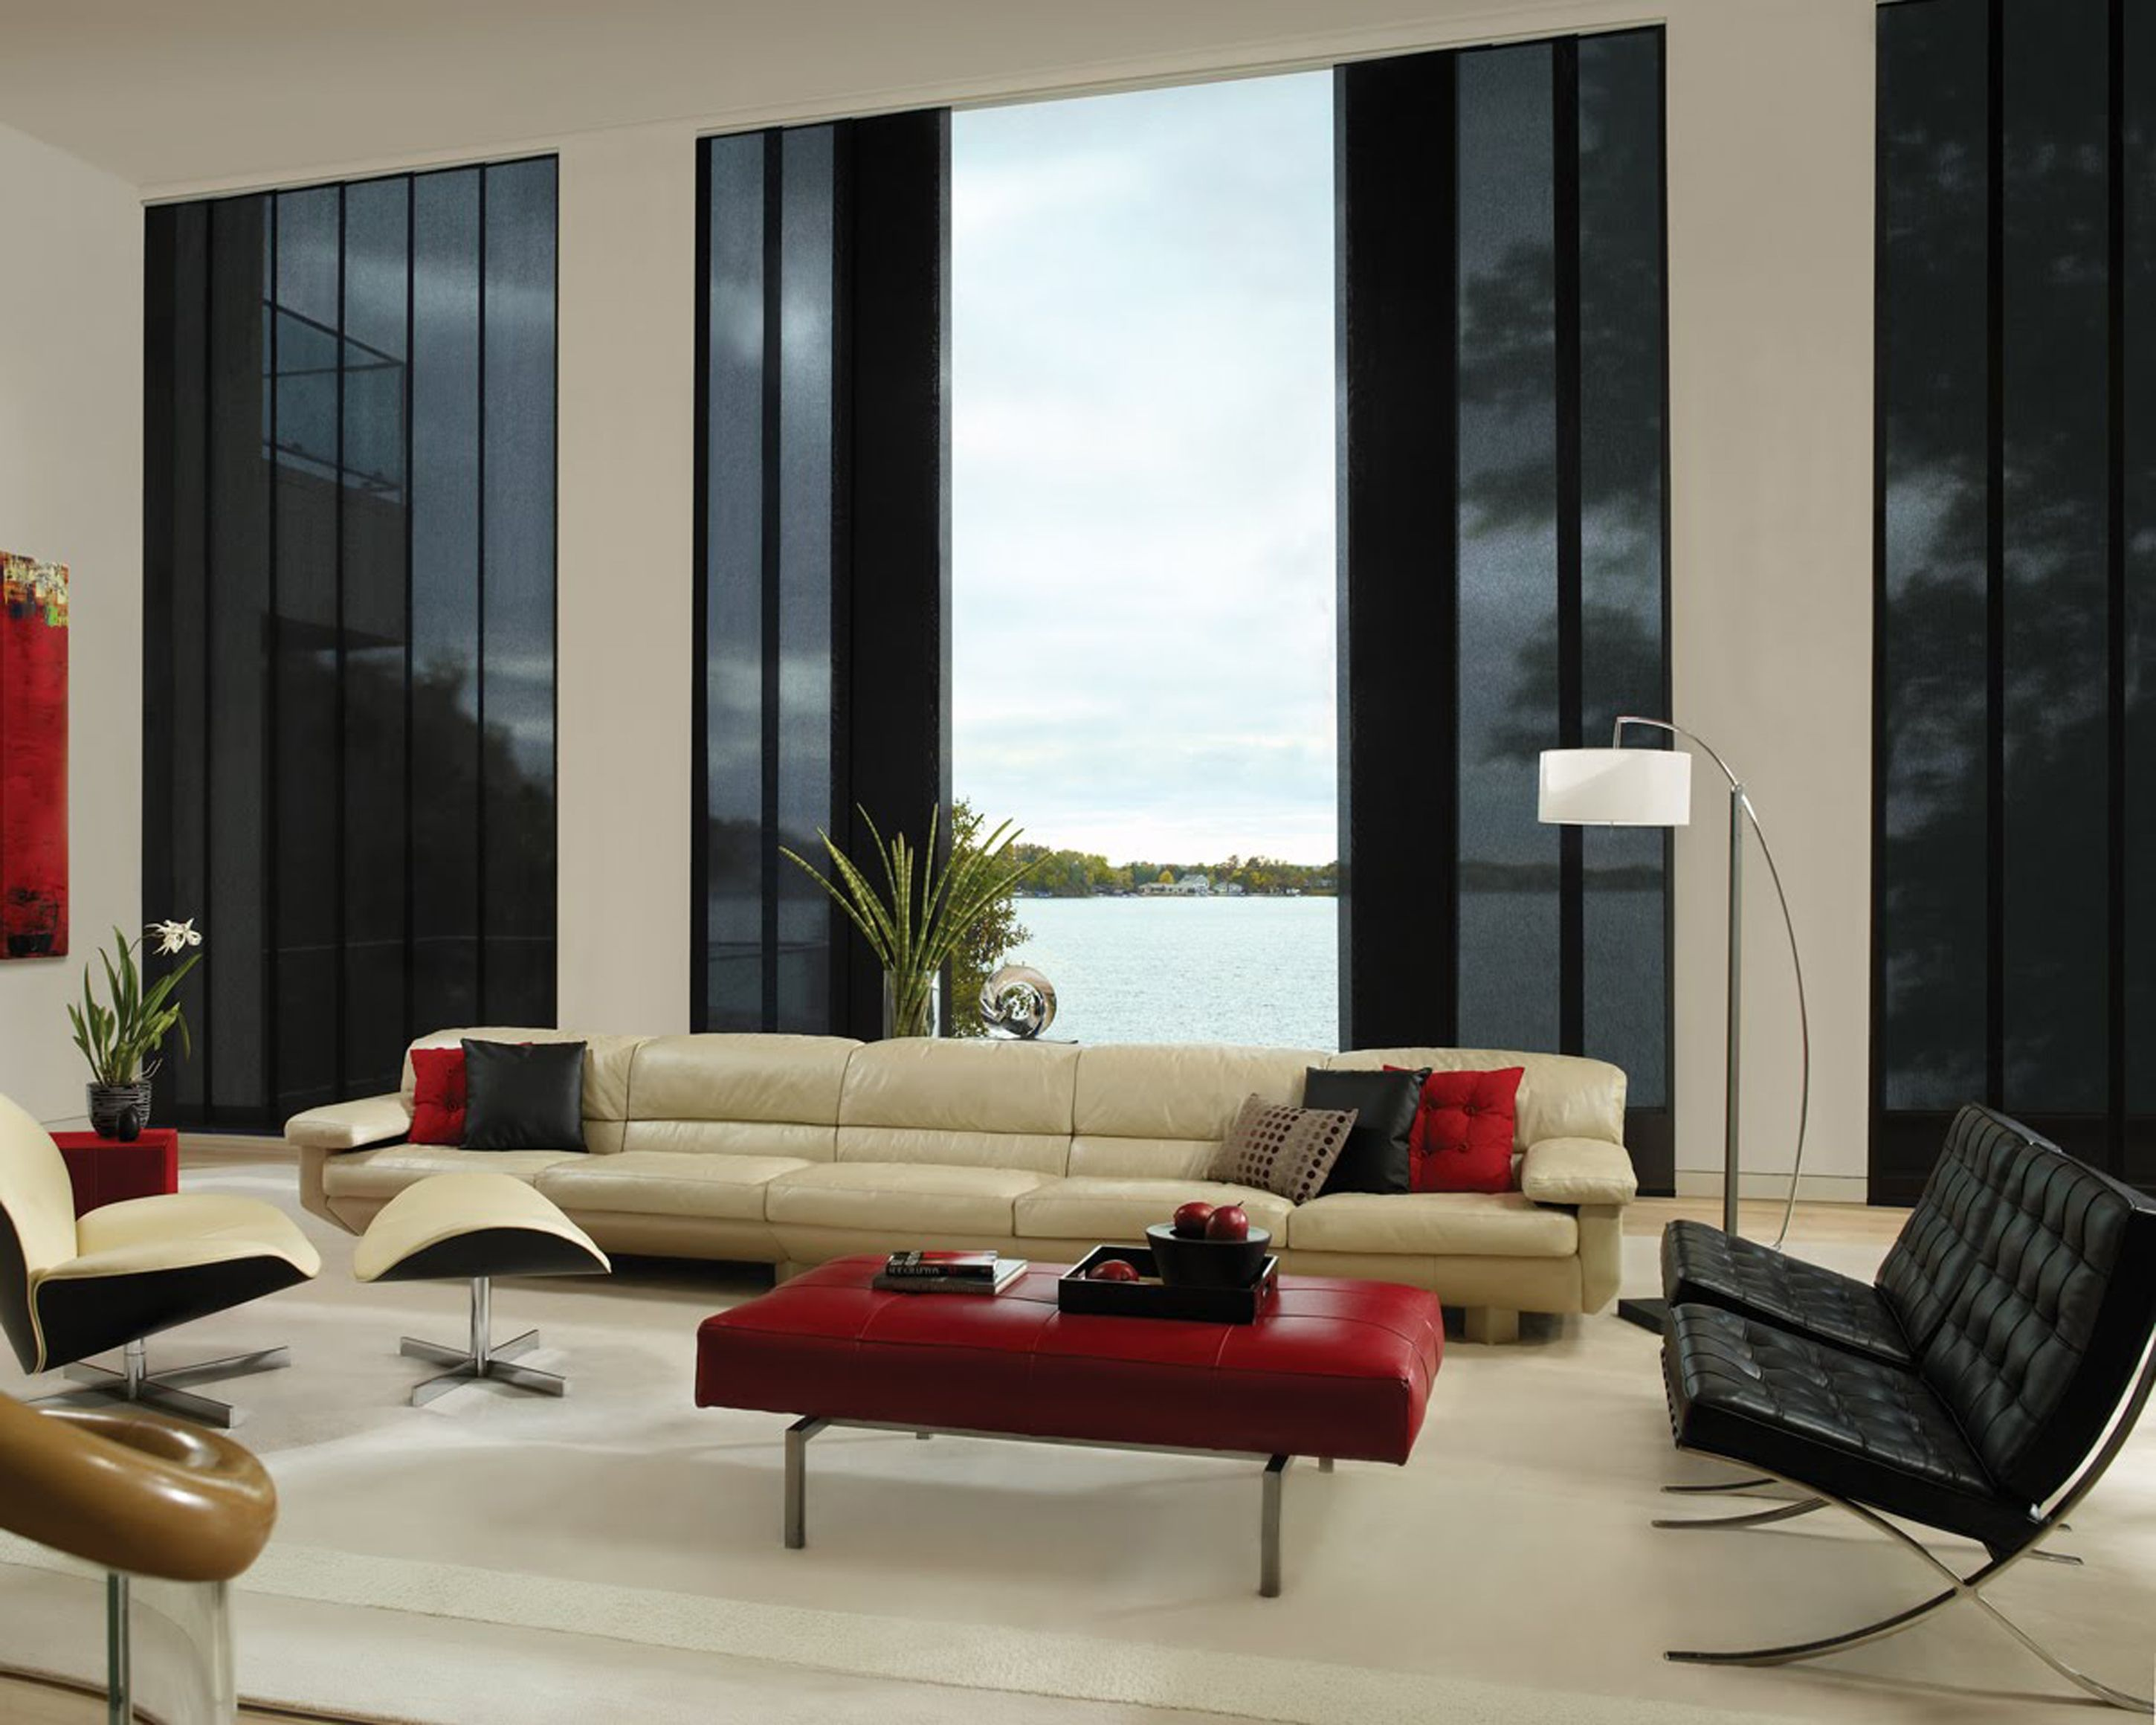 ideas red white easy black silver image furniture of living and retro simple room